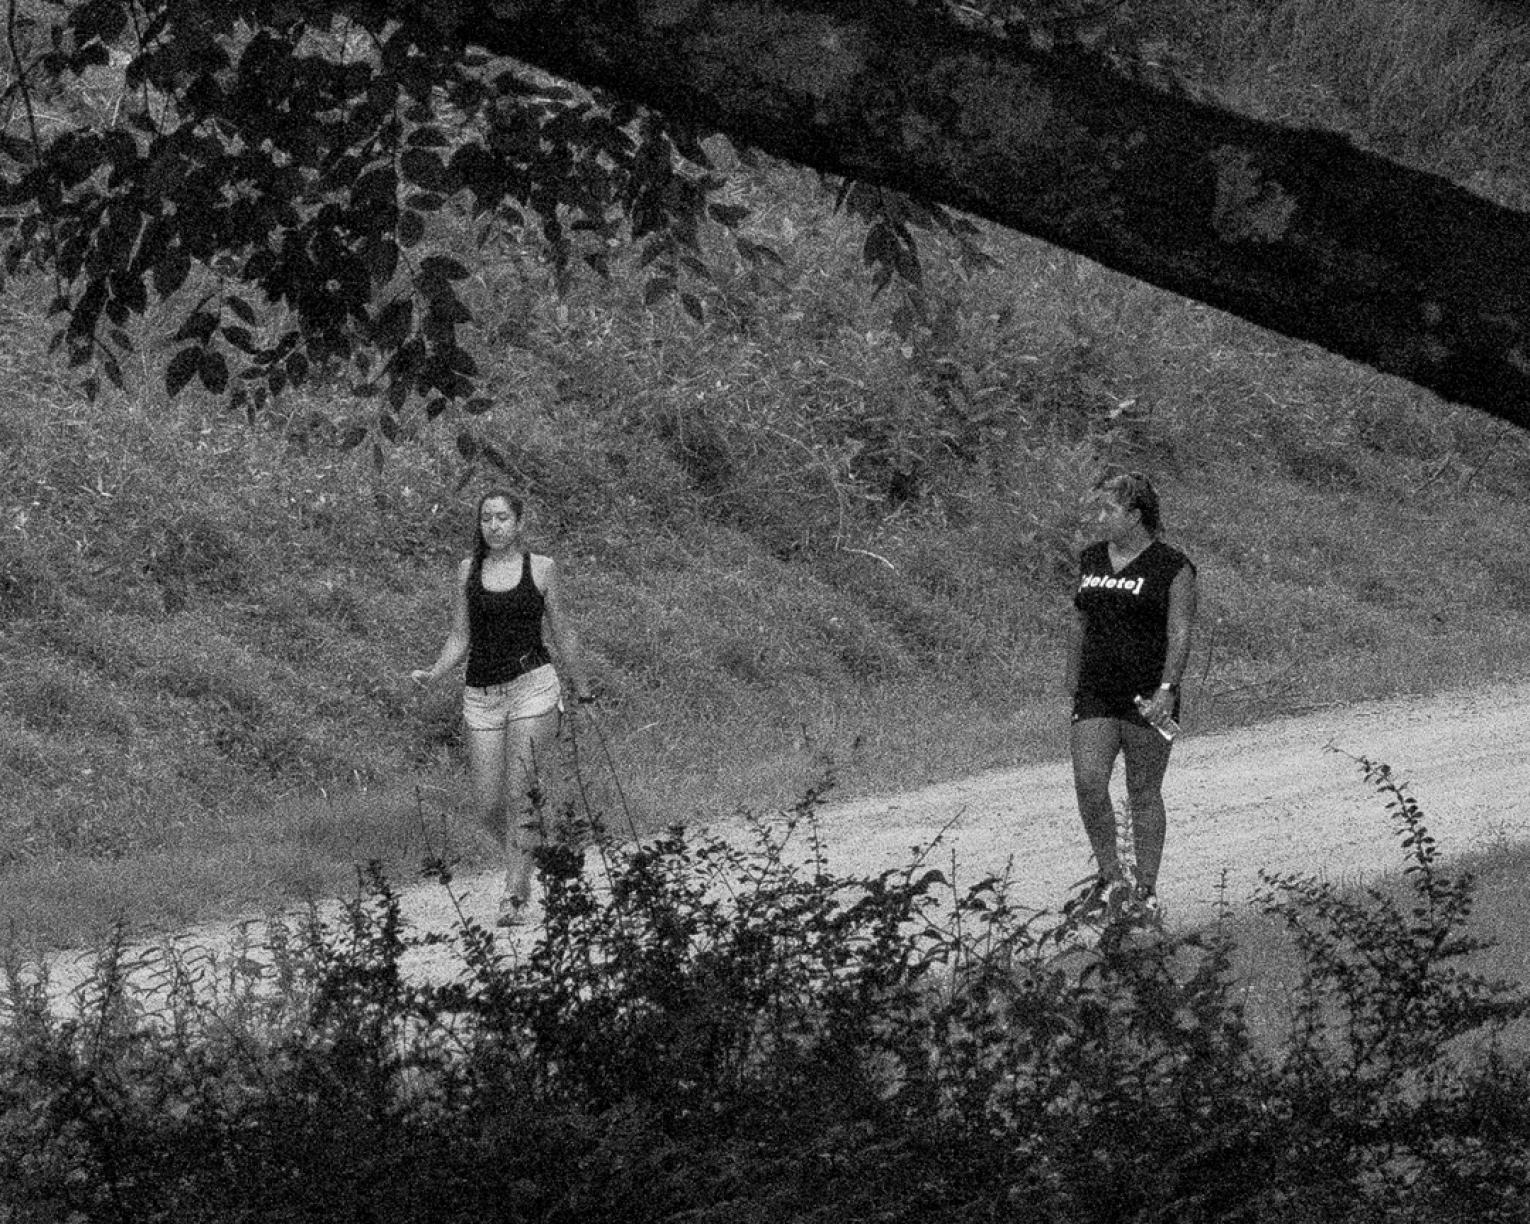 Black and white photo of two women walking down the road; one wears a shirt that says